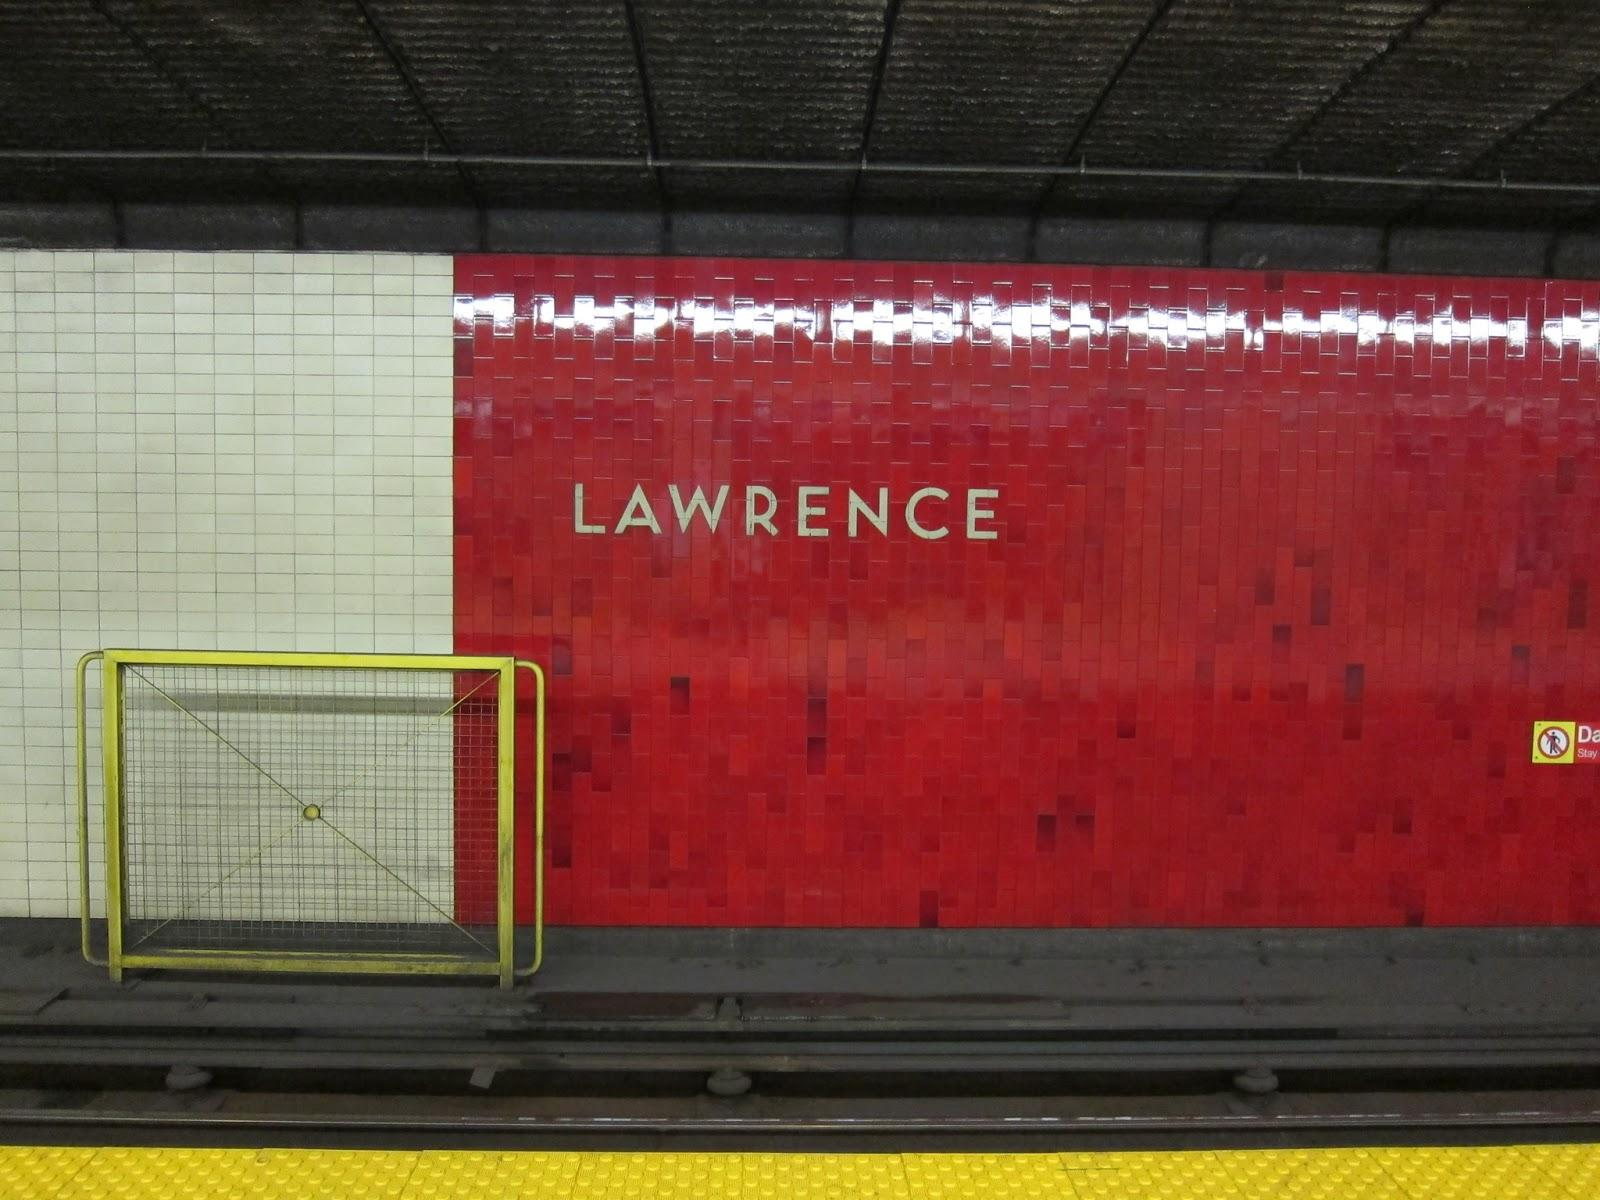 Station Fixation: Lawrence